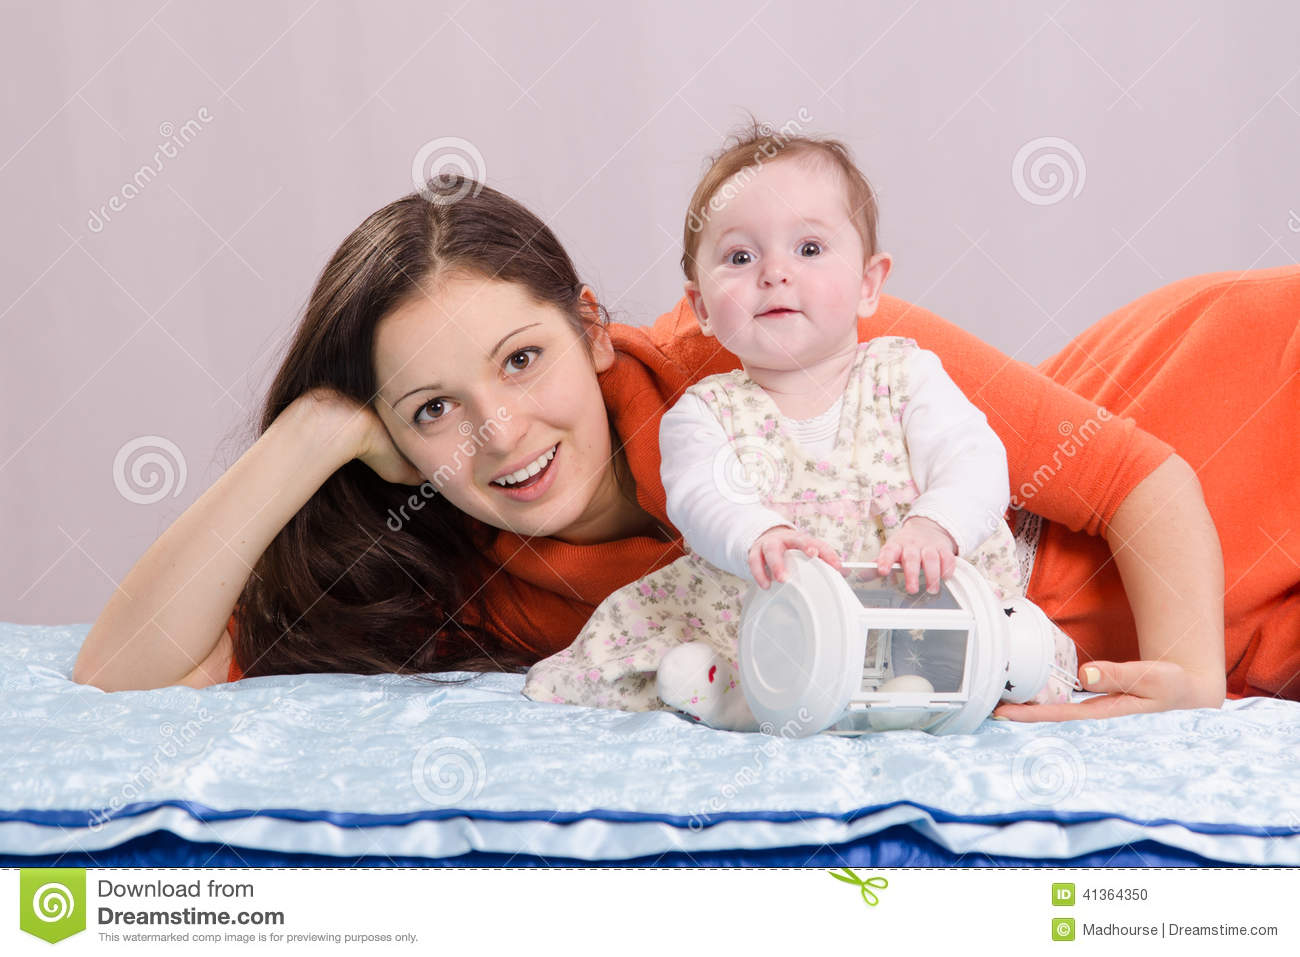 Mom with a six-month daughter playing on the bed